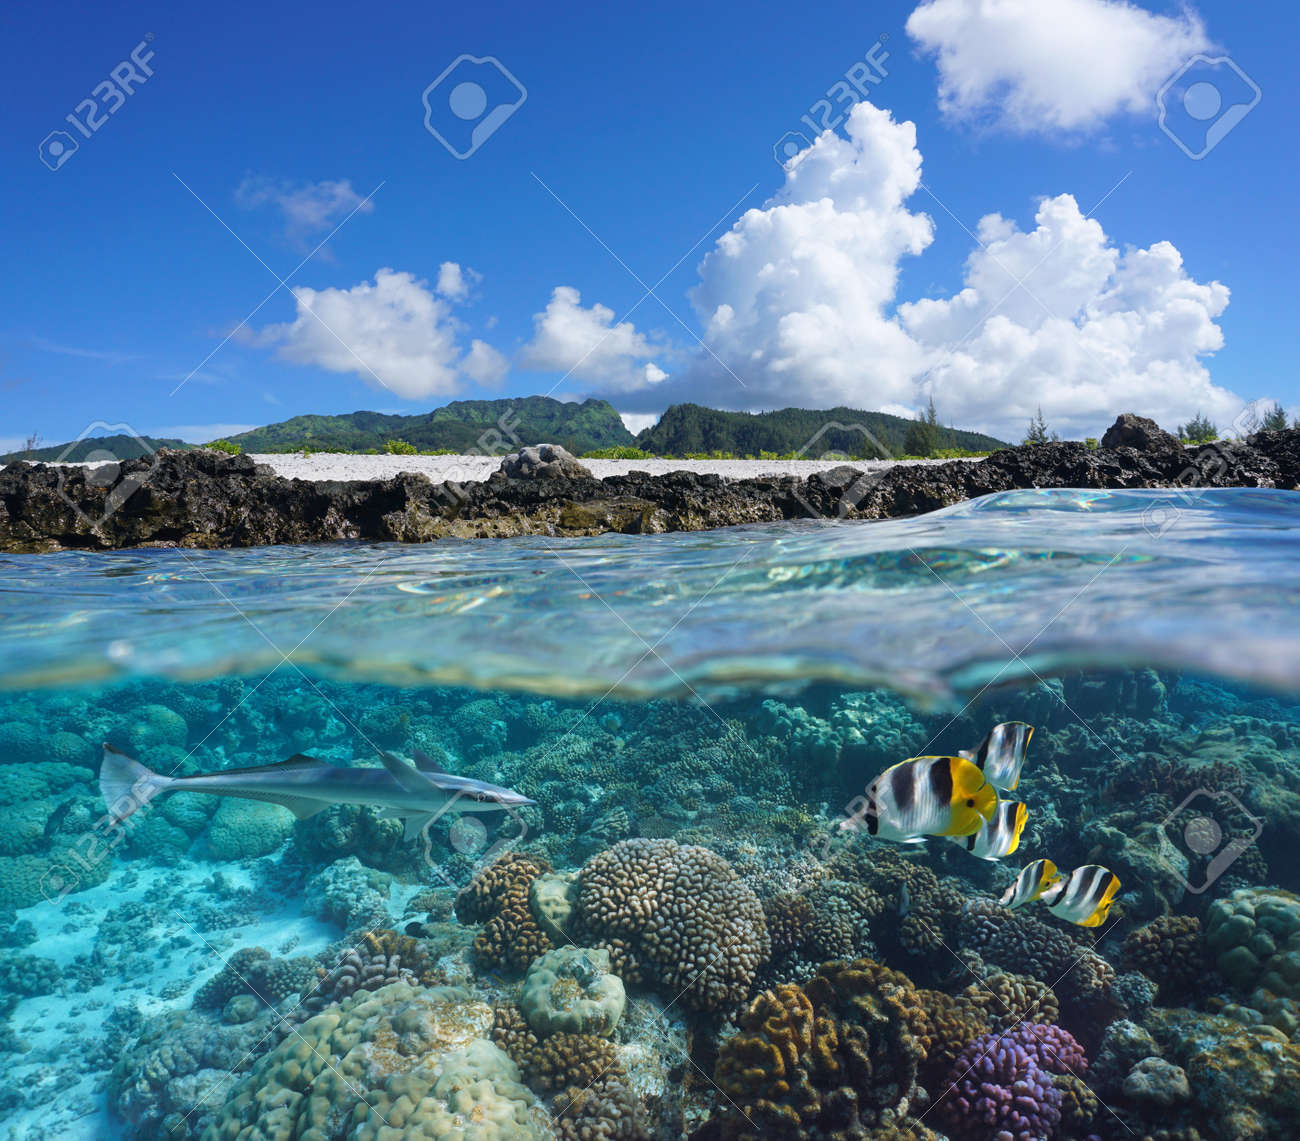 Coral reef with tropical fish and island seashore, split view over and under water surface, south Pacific ocean, French Polynesia, Huahine - 169279986